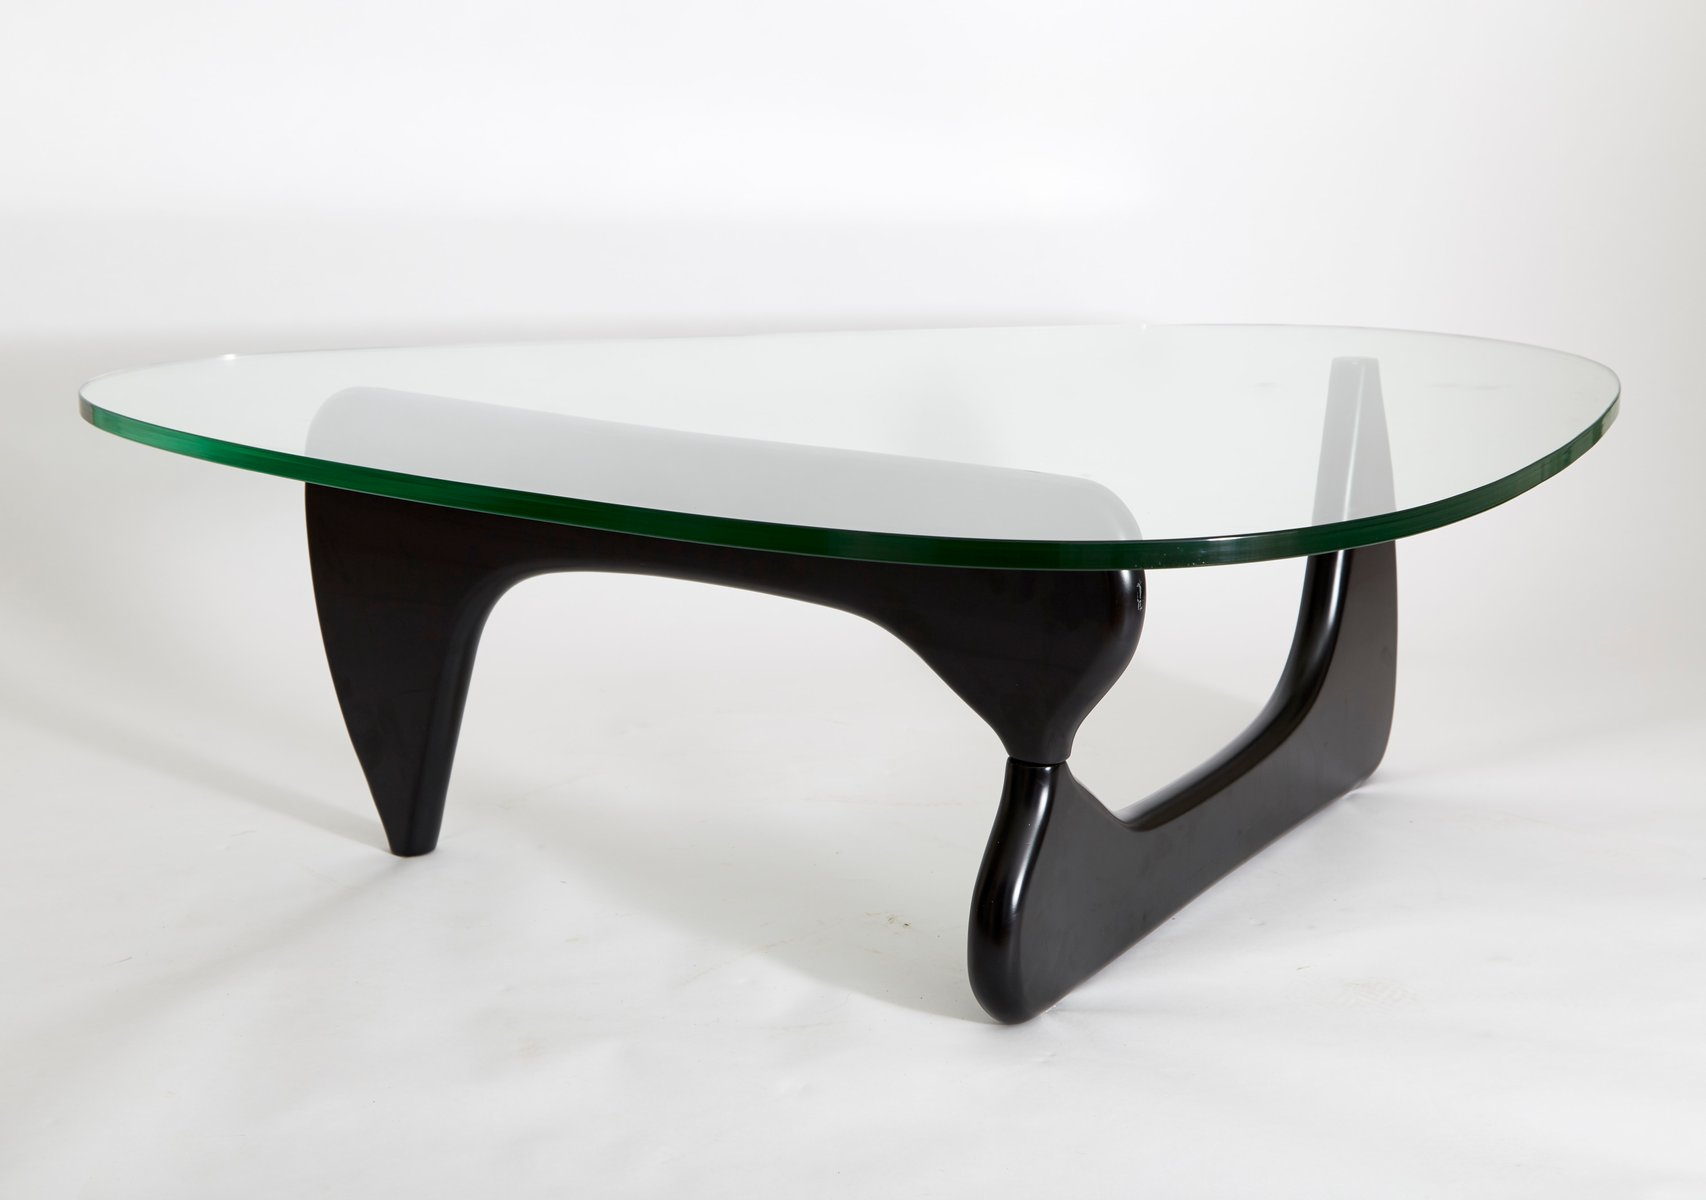 American in 50 coffee table by isamu noguchi for herman miller 1944 for sale at pamono Herman miller noguchi coffee table